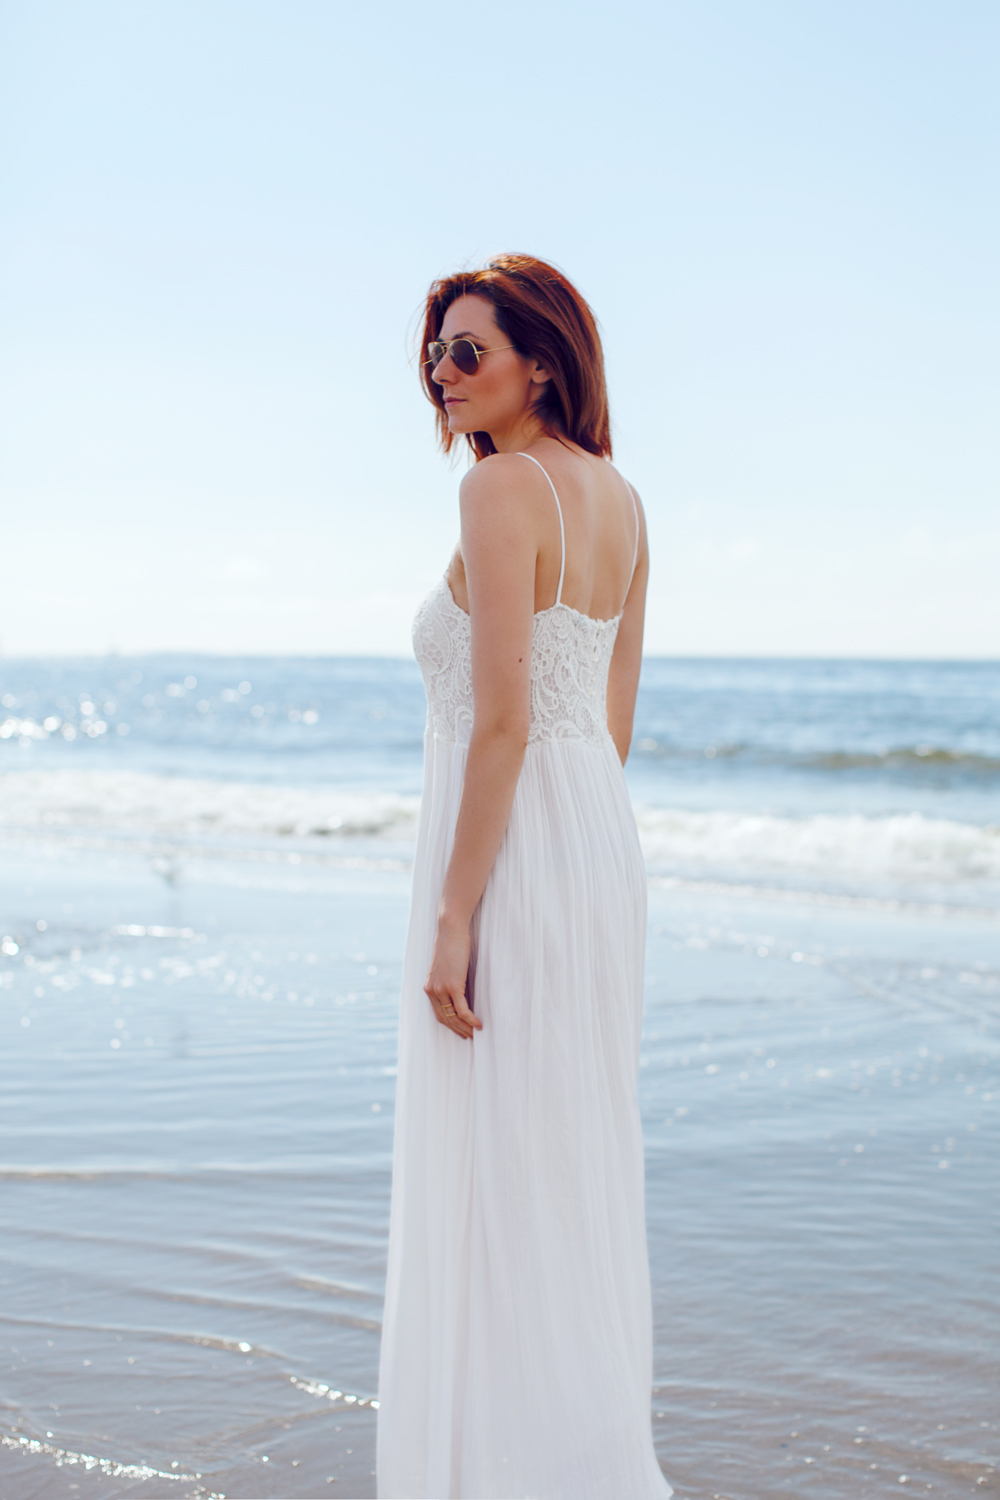 Maxi dress in the summer